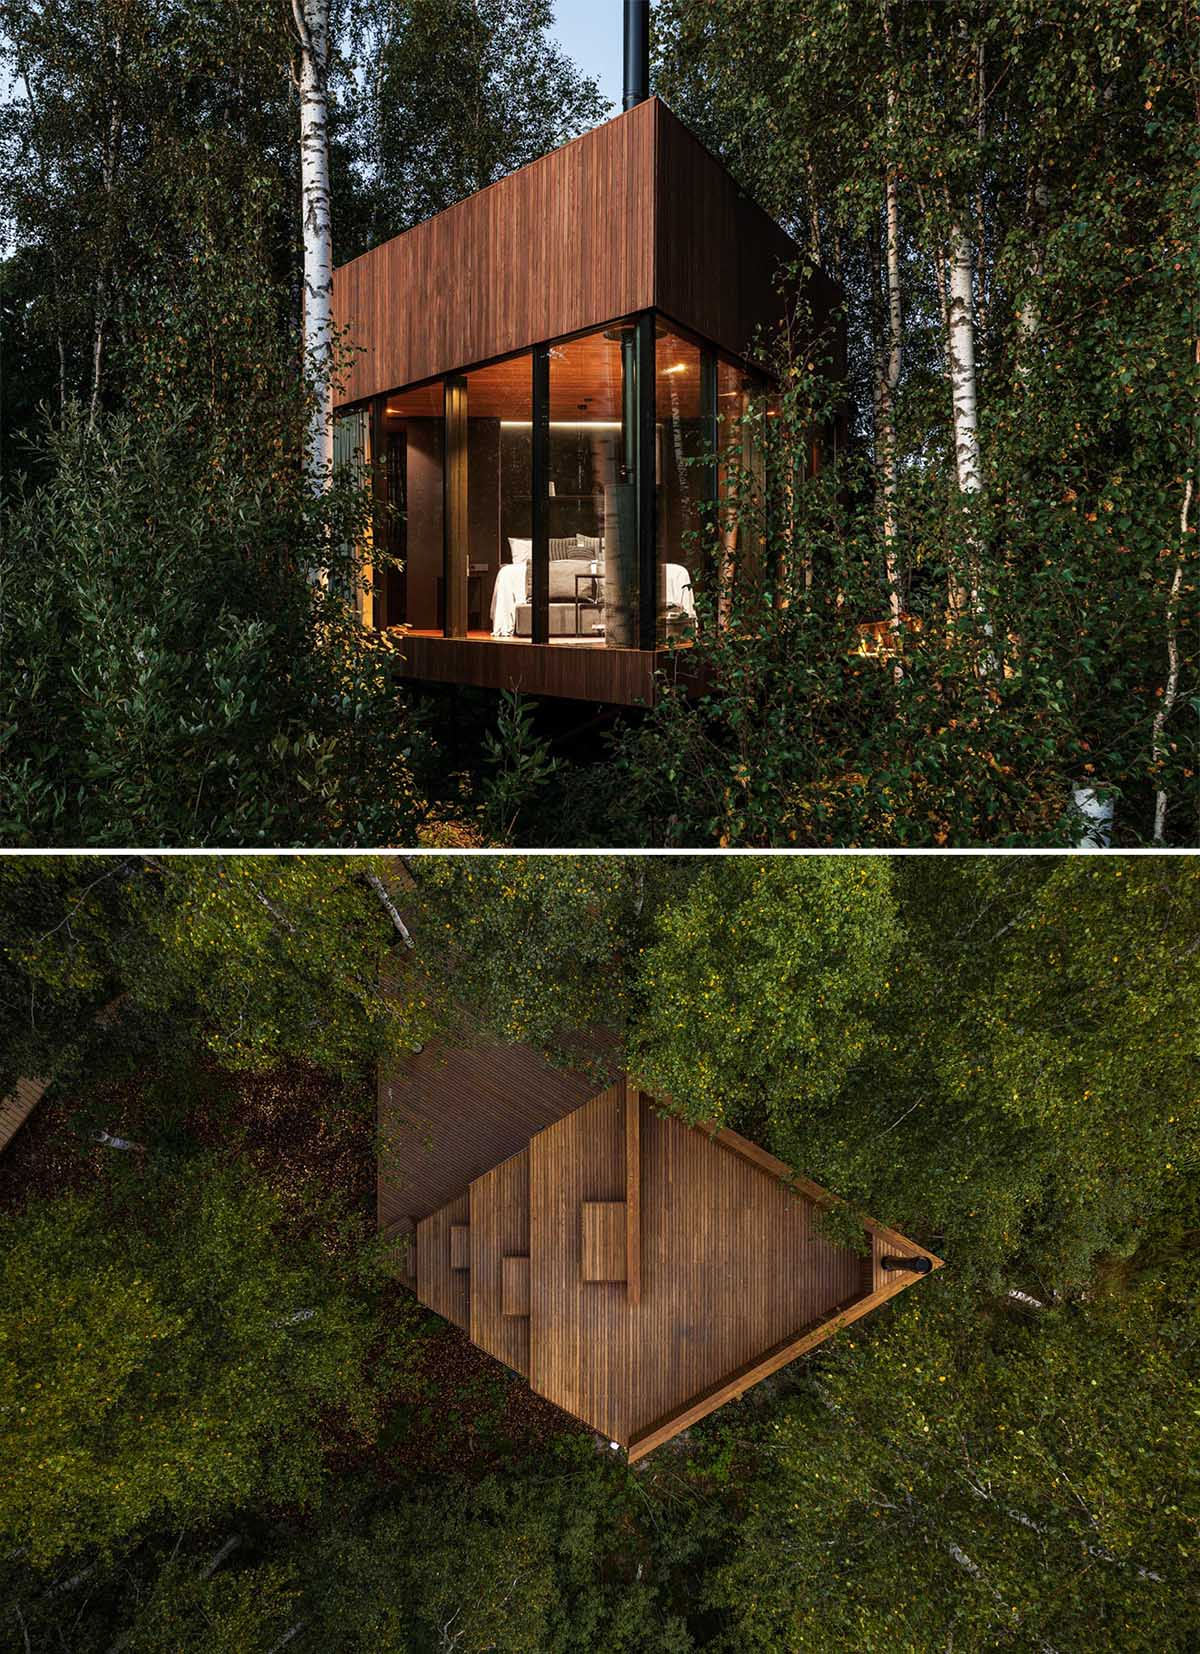 Located on the edge of a bog, this small cabin is designed for 1-2 visitors, and has an angular design with dark brown ash wood walls combined with large windows.